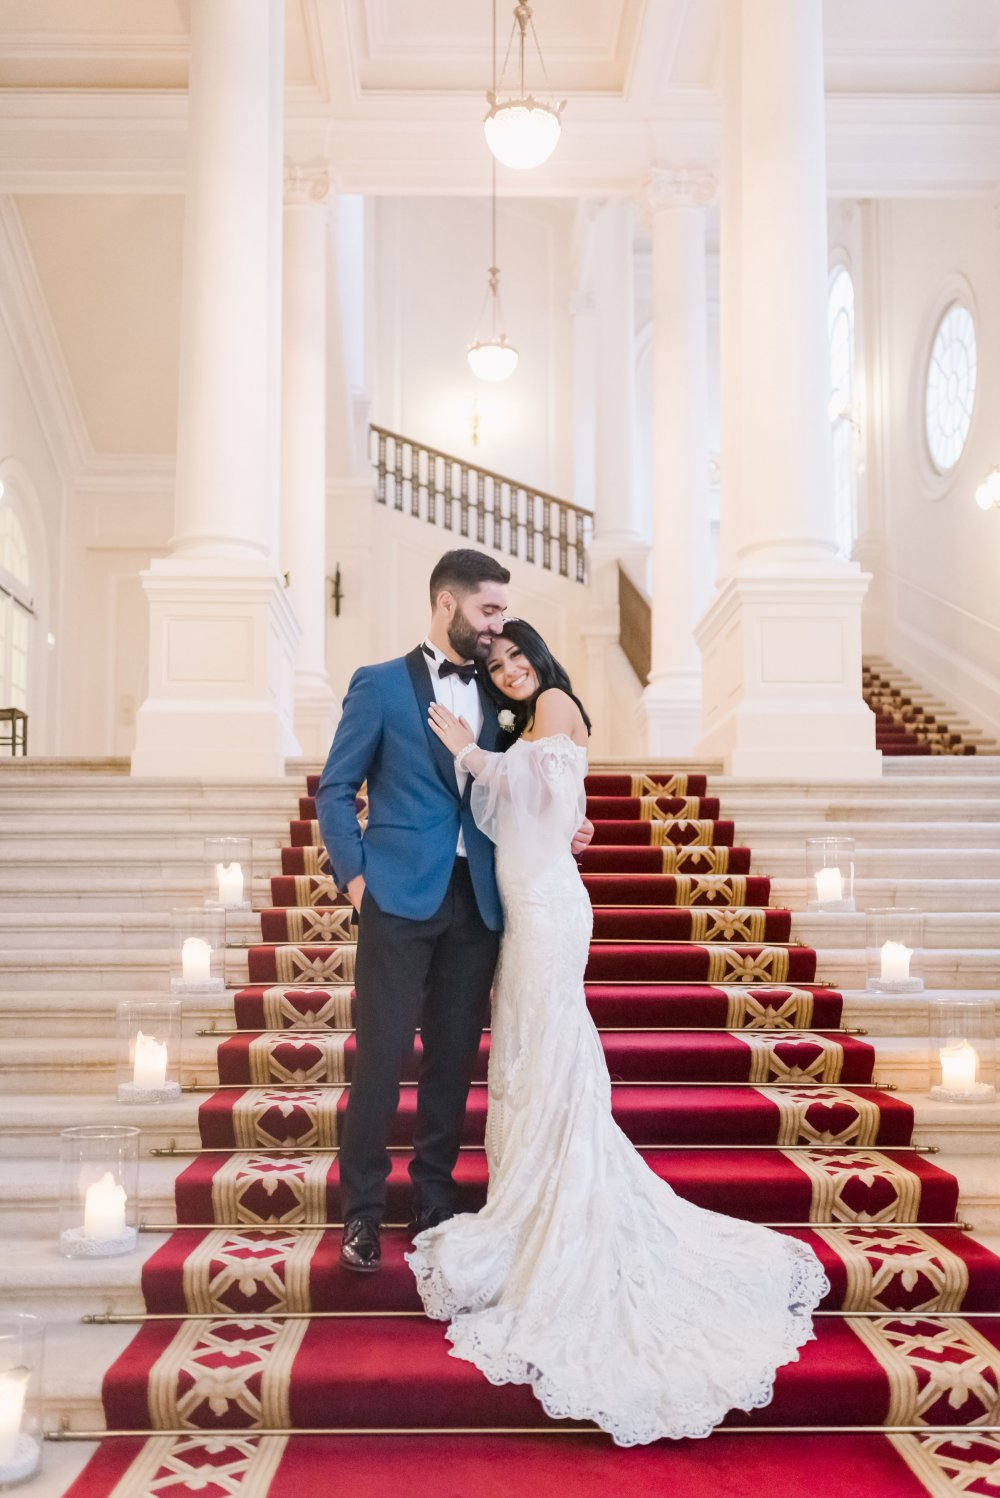 luxury wedding vienna austria palais coburg couple red carpet